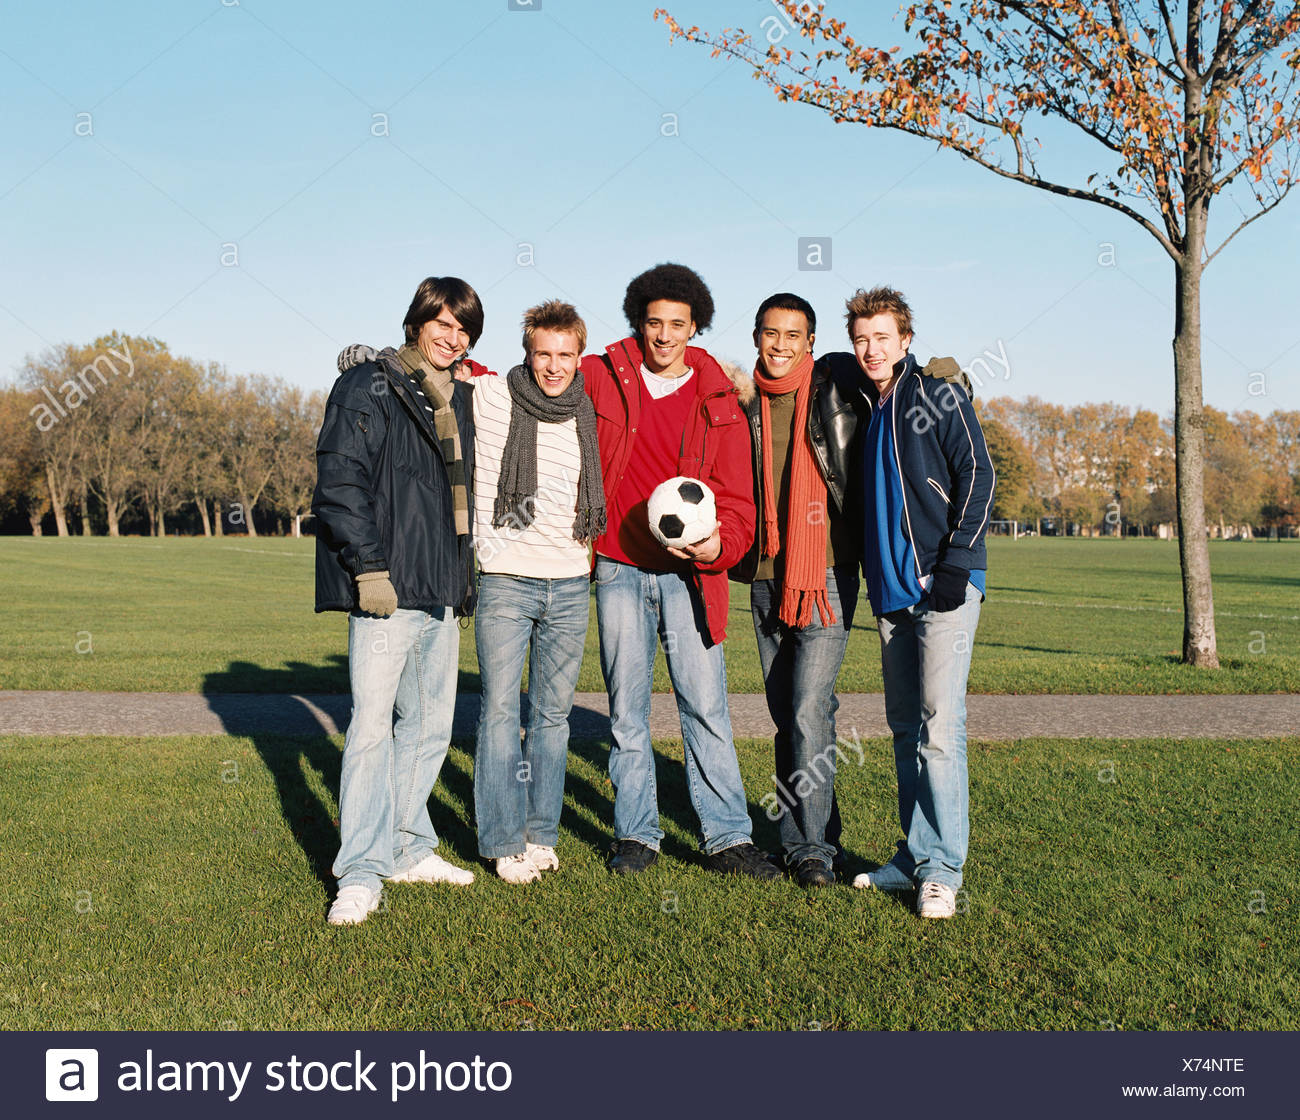 Men with a football in park - Stock Image